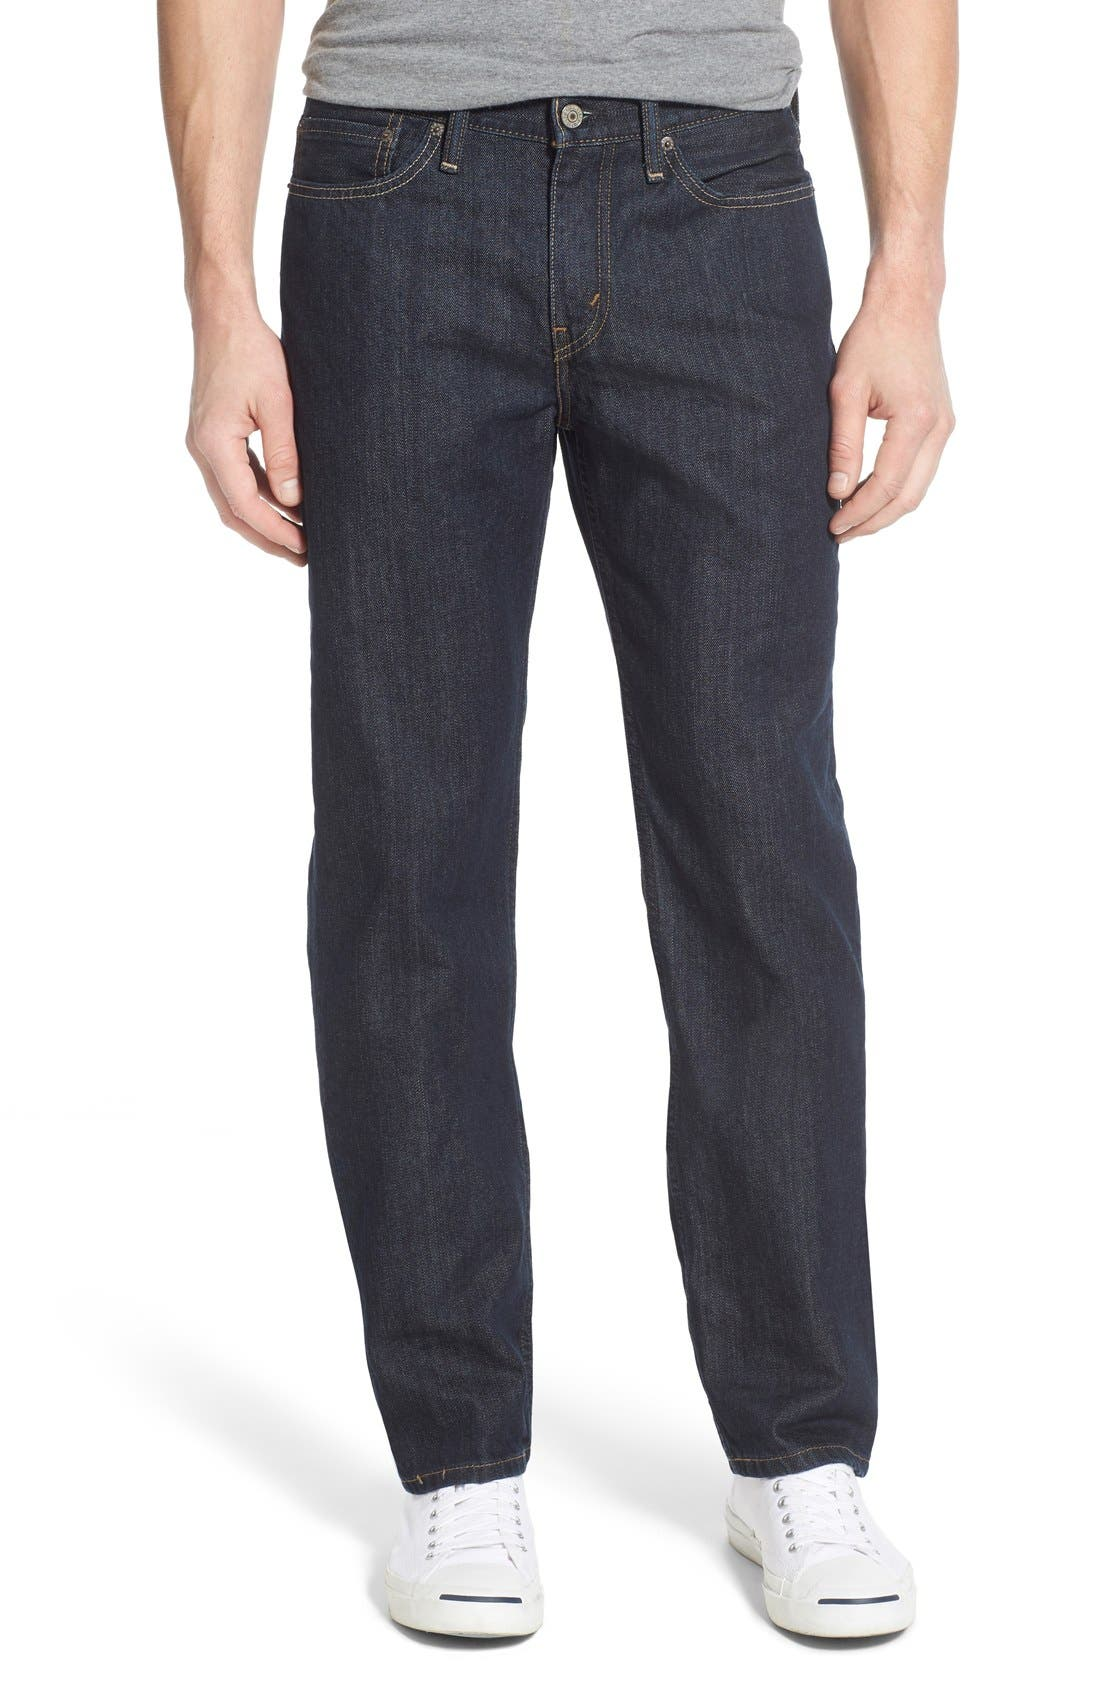 Main Image - Levi's® 514™ Straight Leg Jeans (Tumbled Rigid) (Regular & Tall)